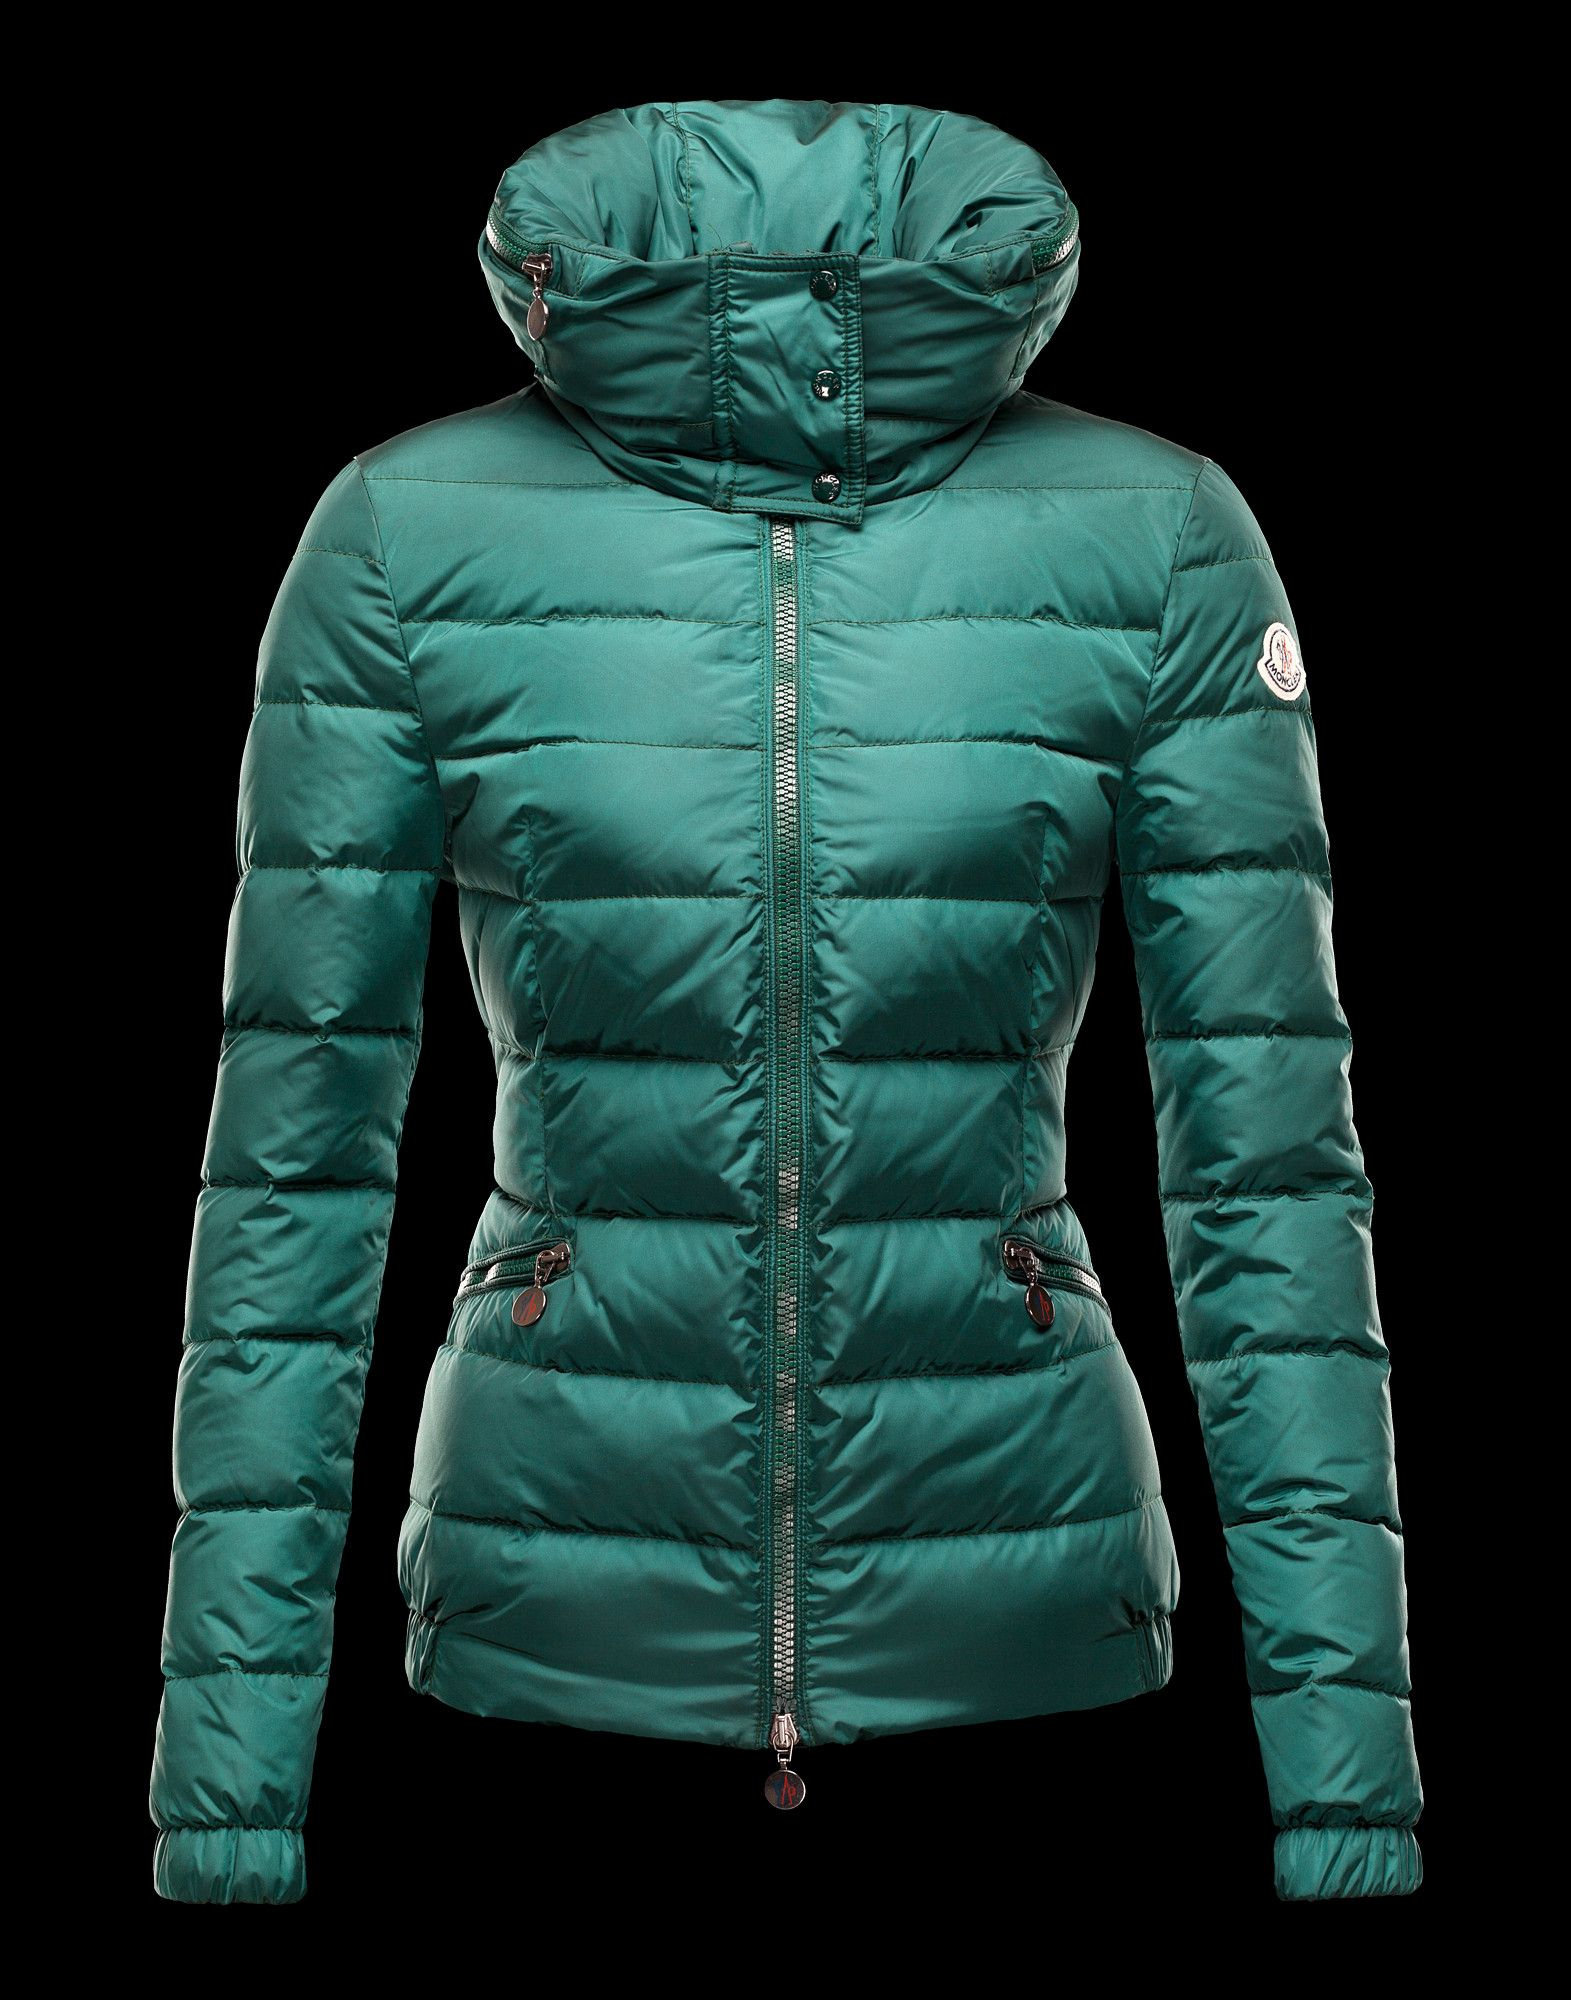 Clothing and down jackets for men, women and kids | Ski